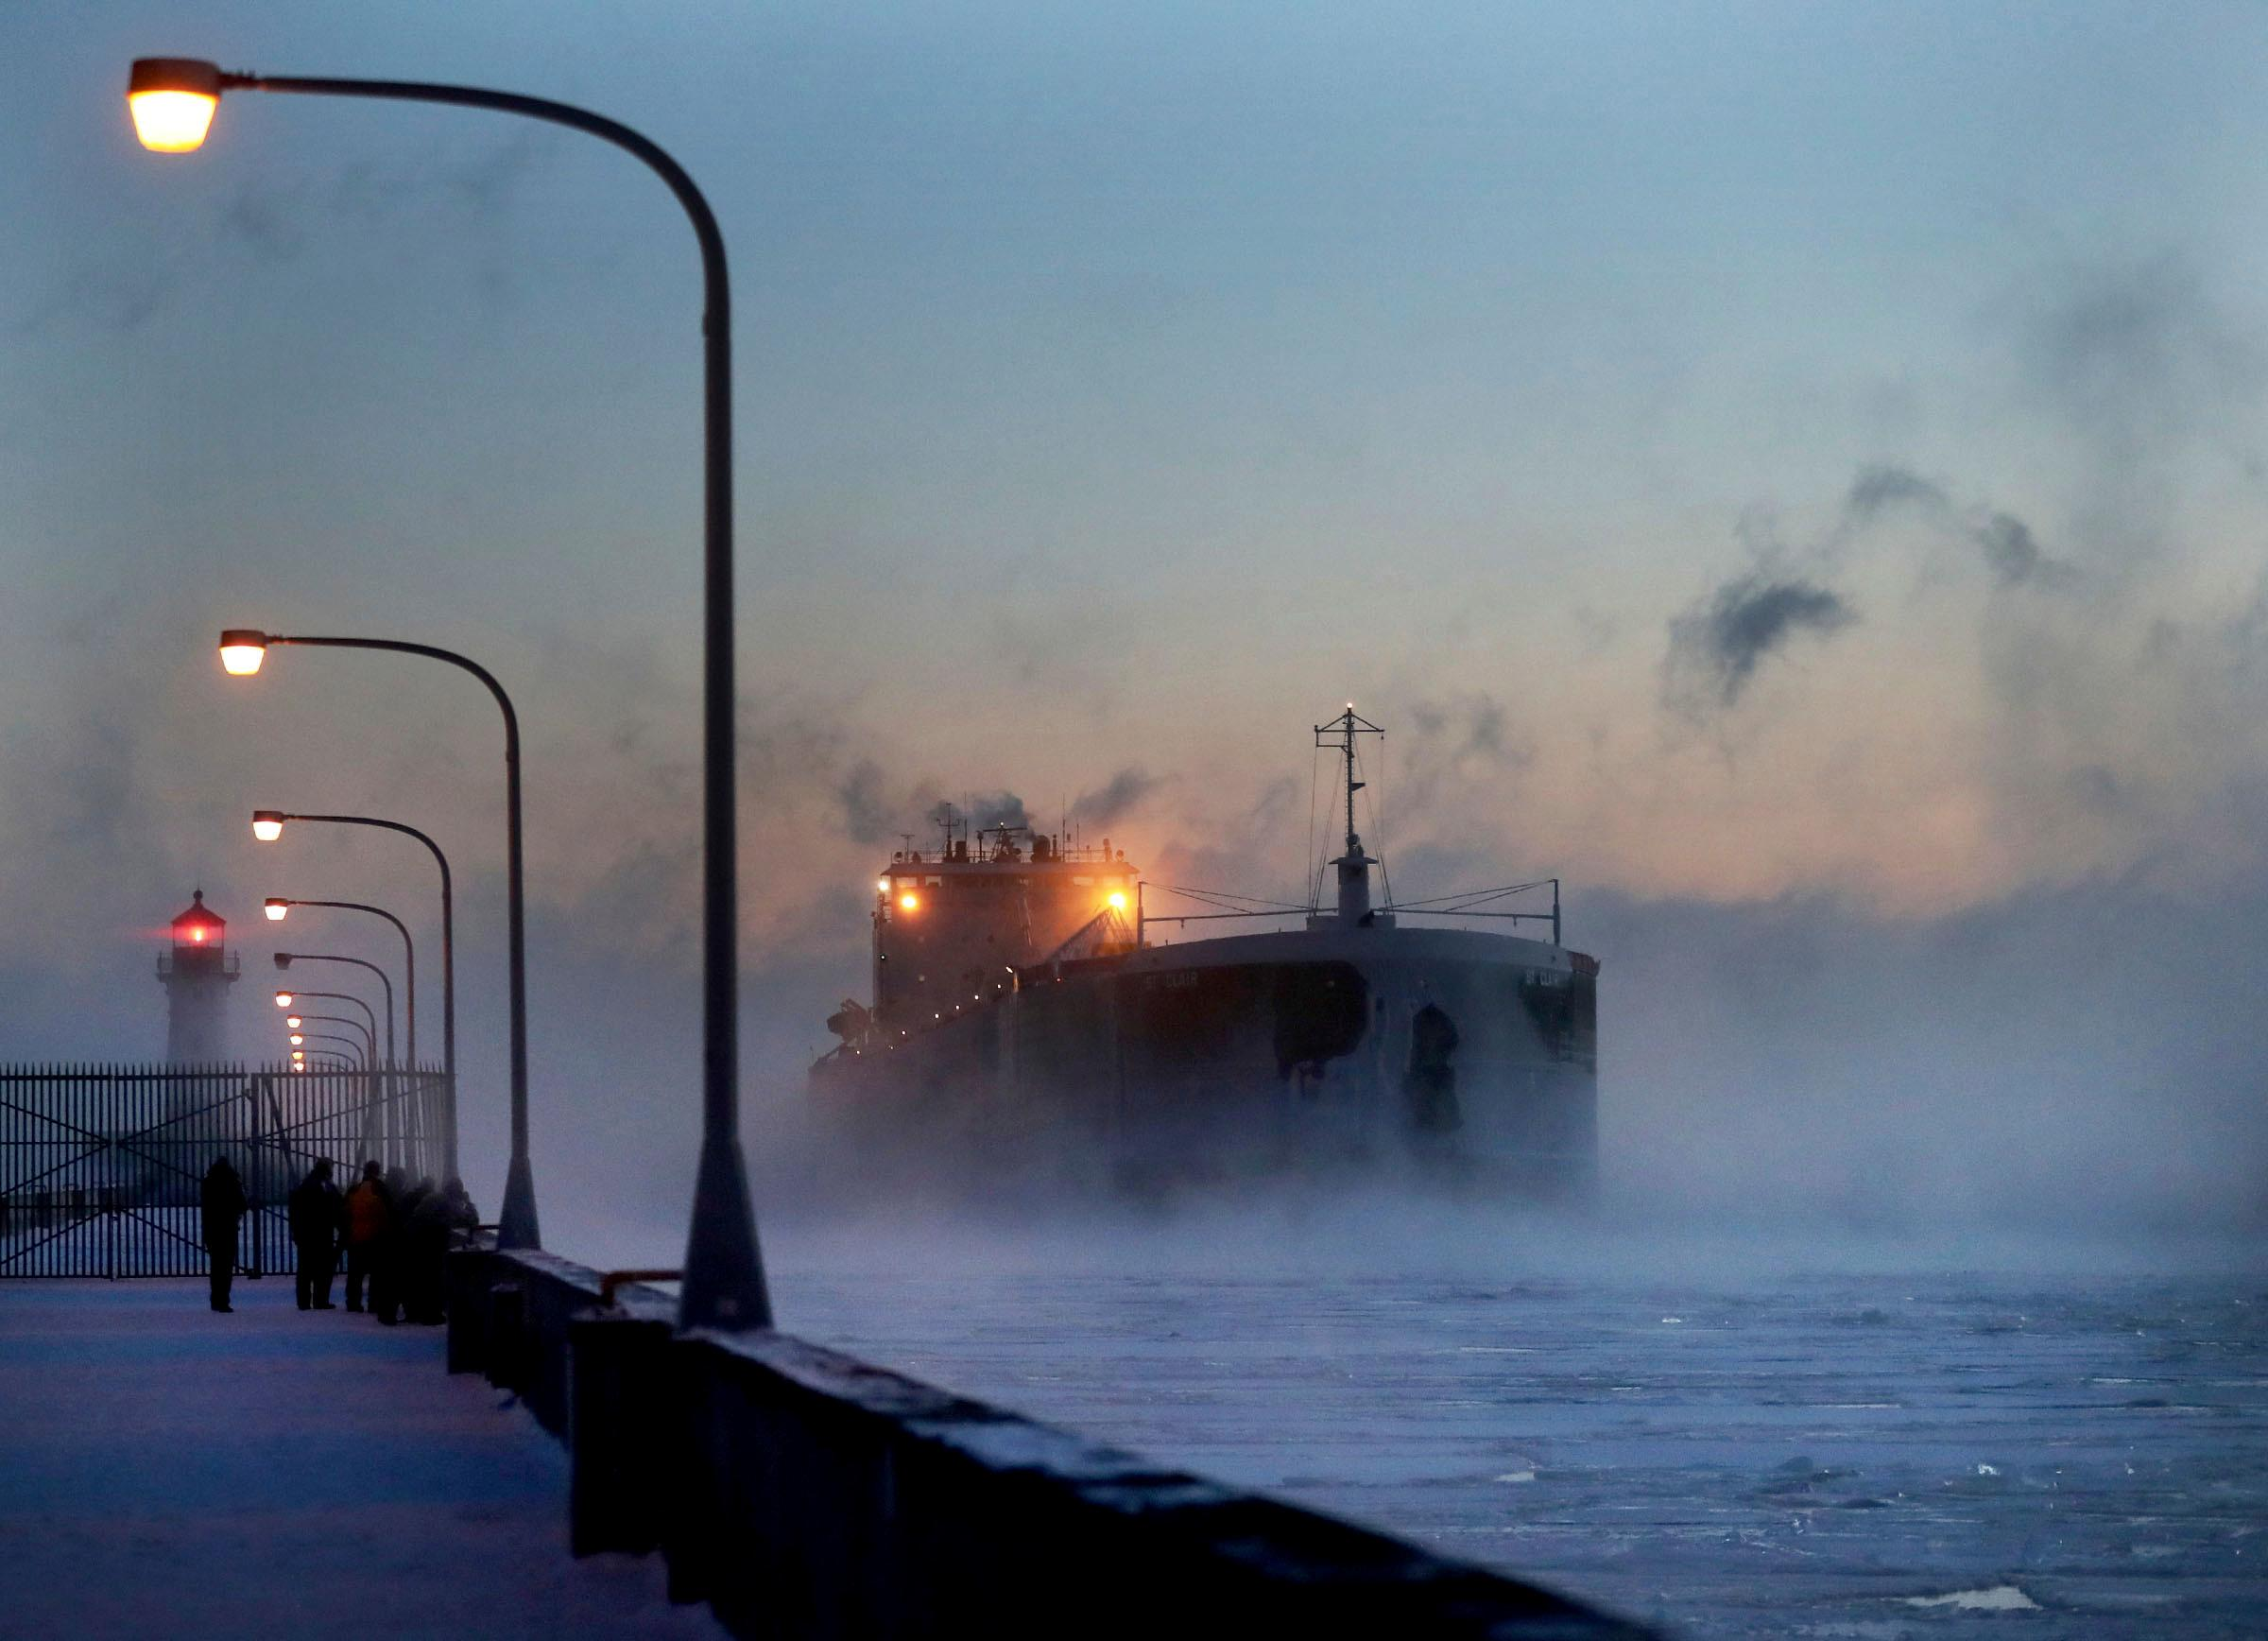 Steam rises from Lake Superior as the ship St. Clair comes to harbor during some of the coldest temps of the year, Sunday, Dec. 31, 2017, at Canal Park in Duluth, Minn. The St. Clair is a self-unloader built in 1976 at Sturgeon Bay, Wis., and is 770 feet long and has 26 hatches that open into 5 cargo holds, providing a load capacity of 45,000 tons. (David Joles/Star Tribune via AP)